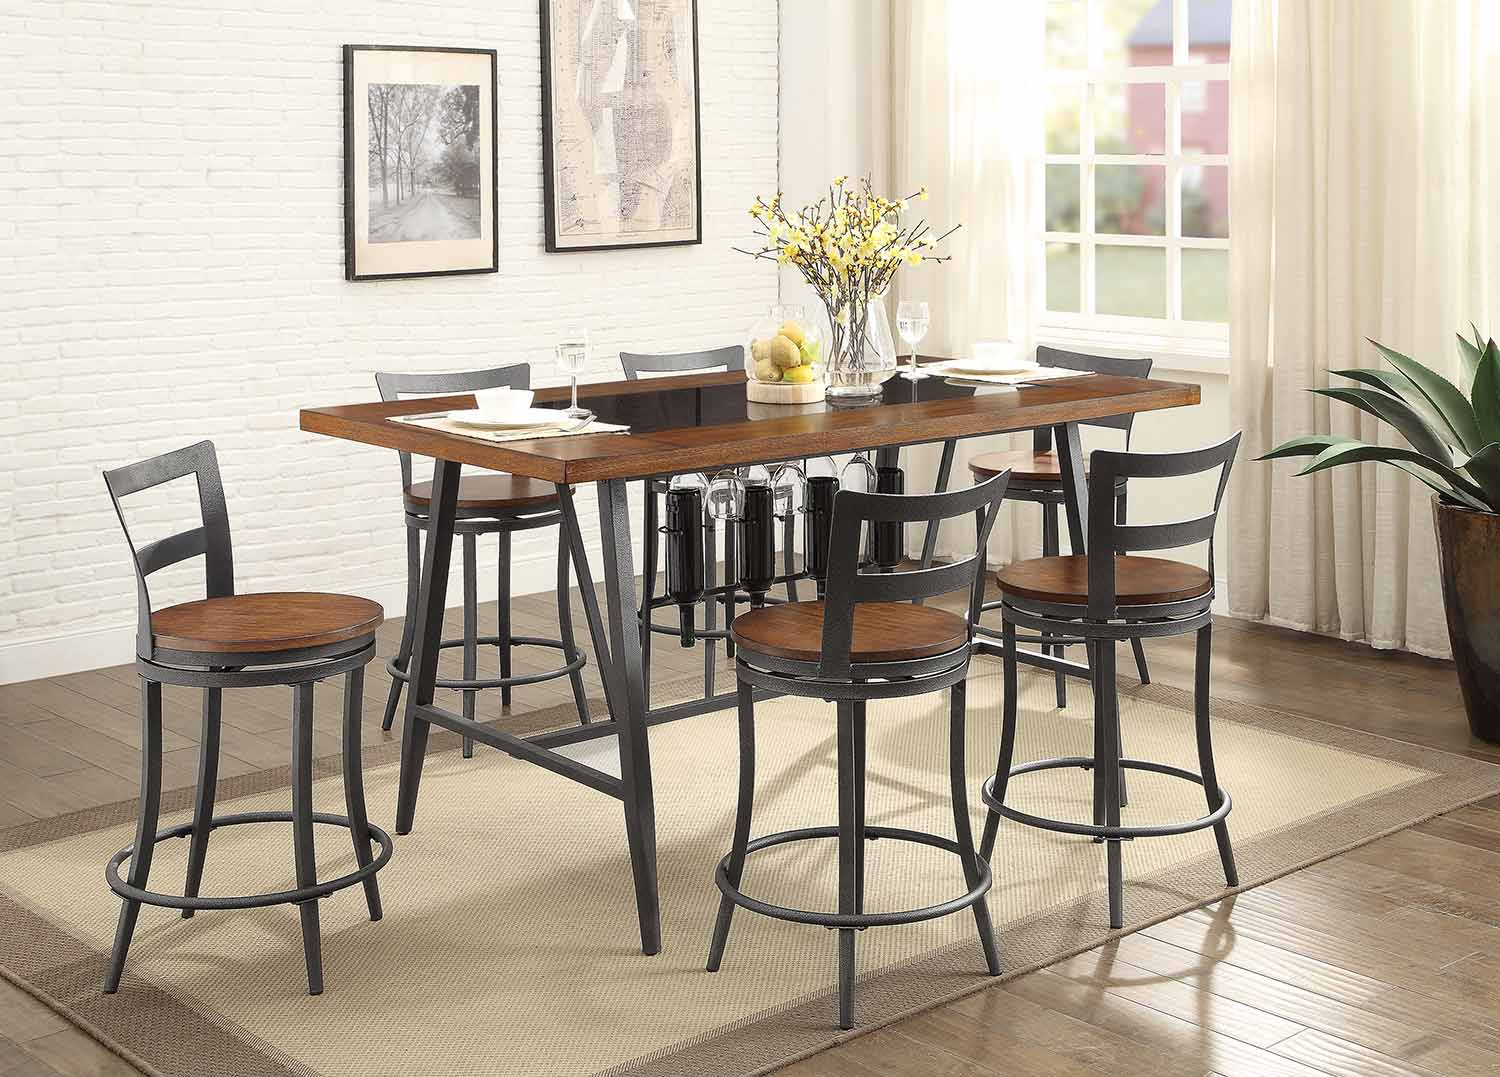 Homelegance Selbyville Rectangular Counter Height Dining Set - Cherry/Gunmetal